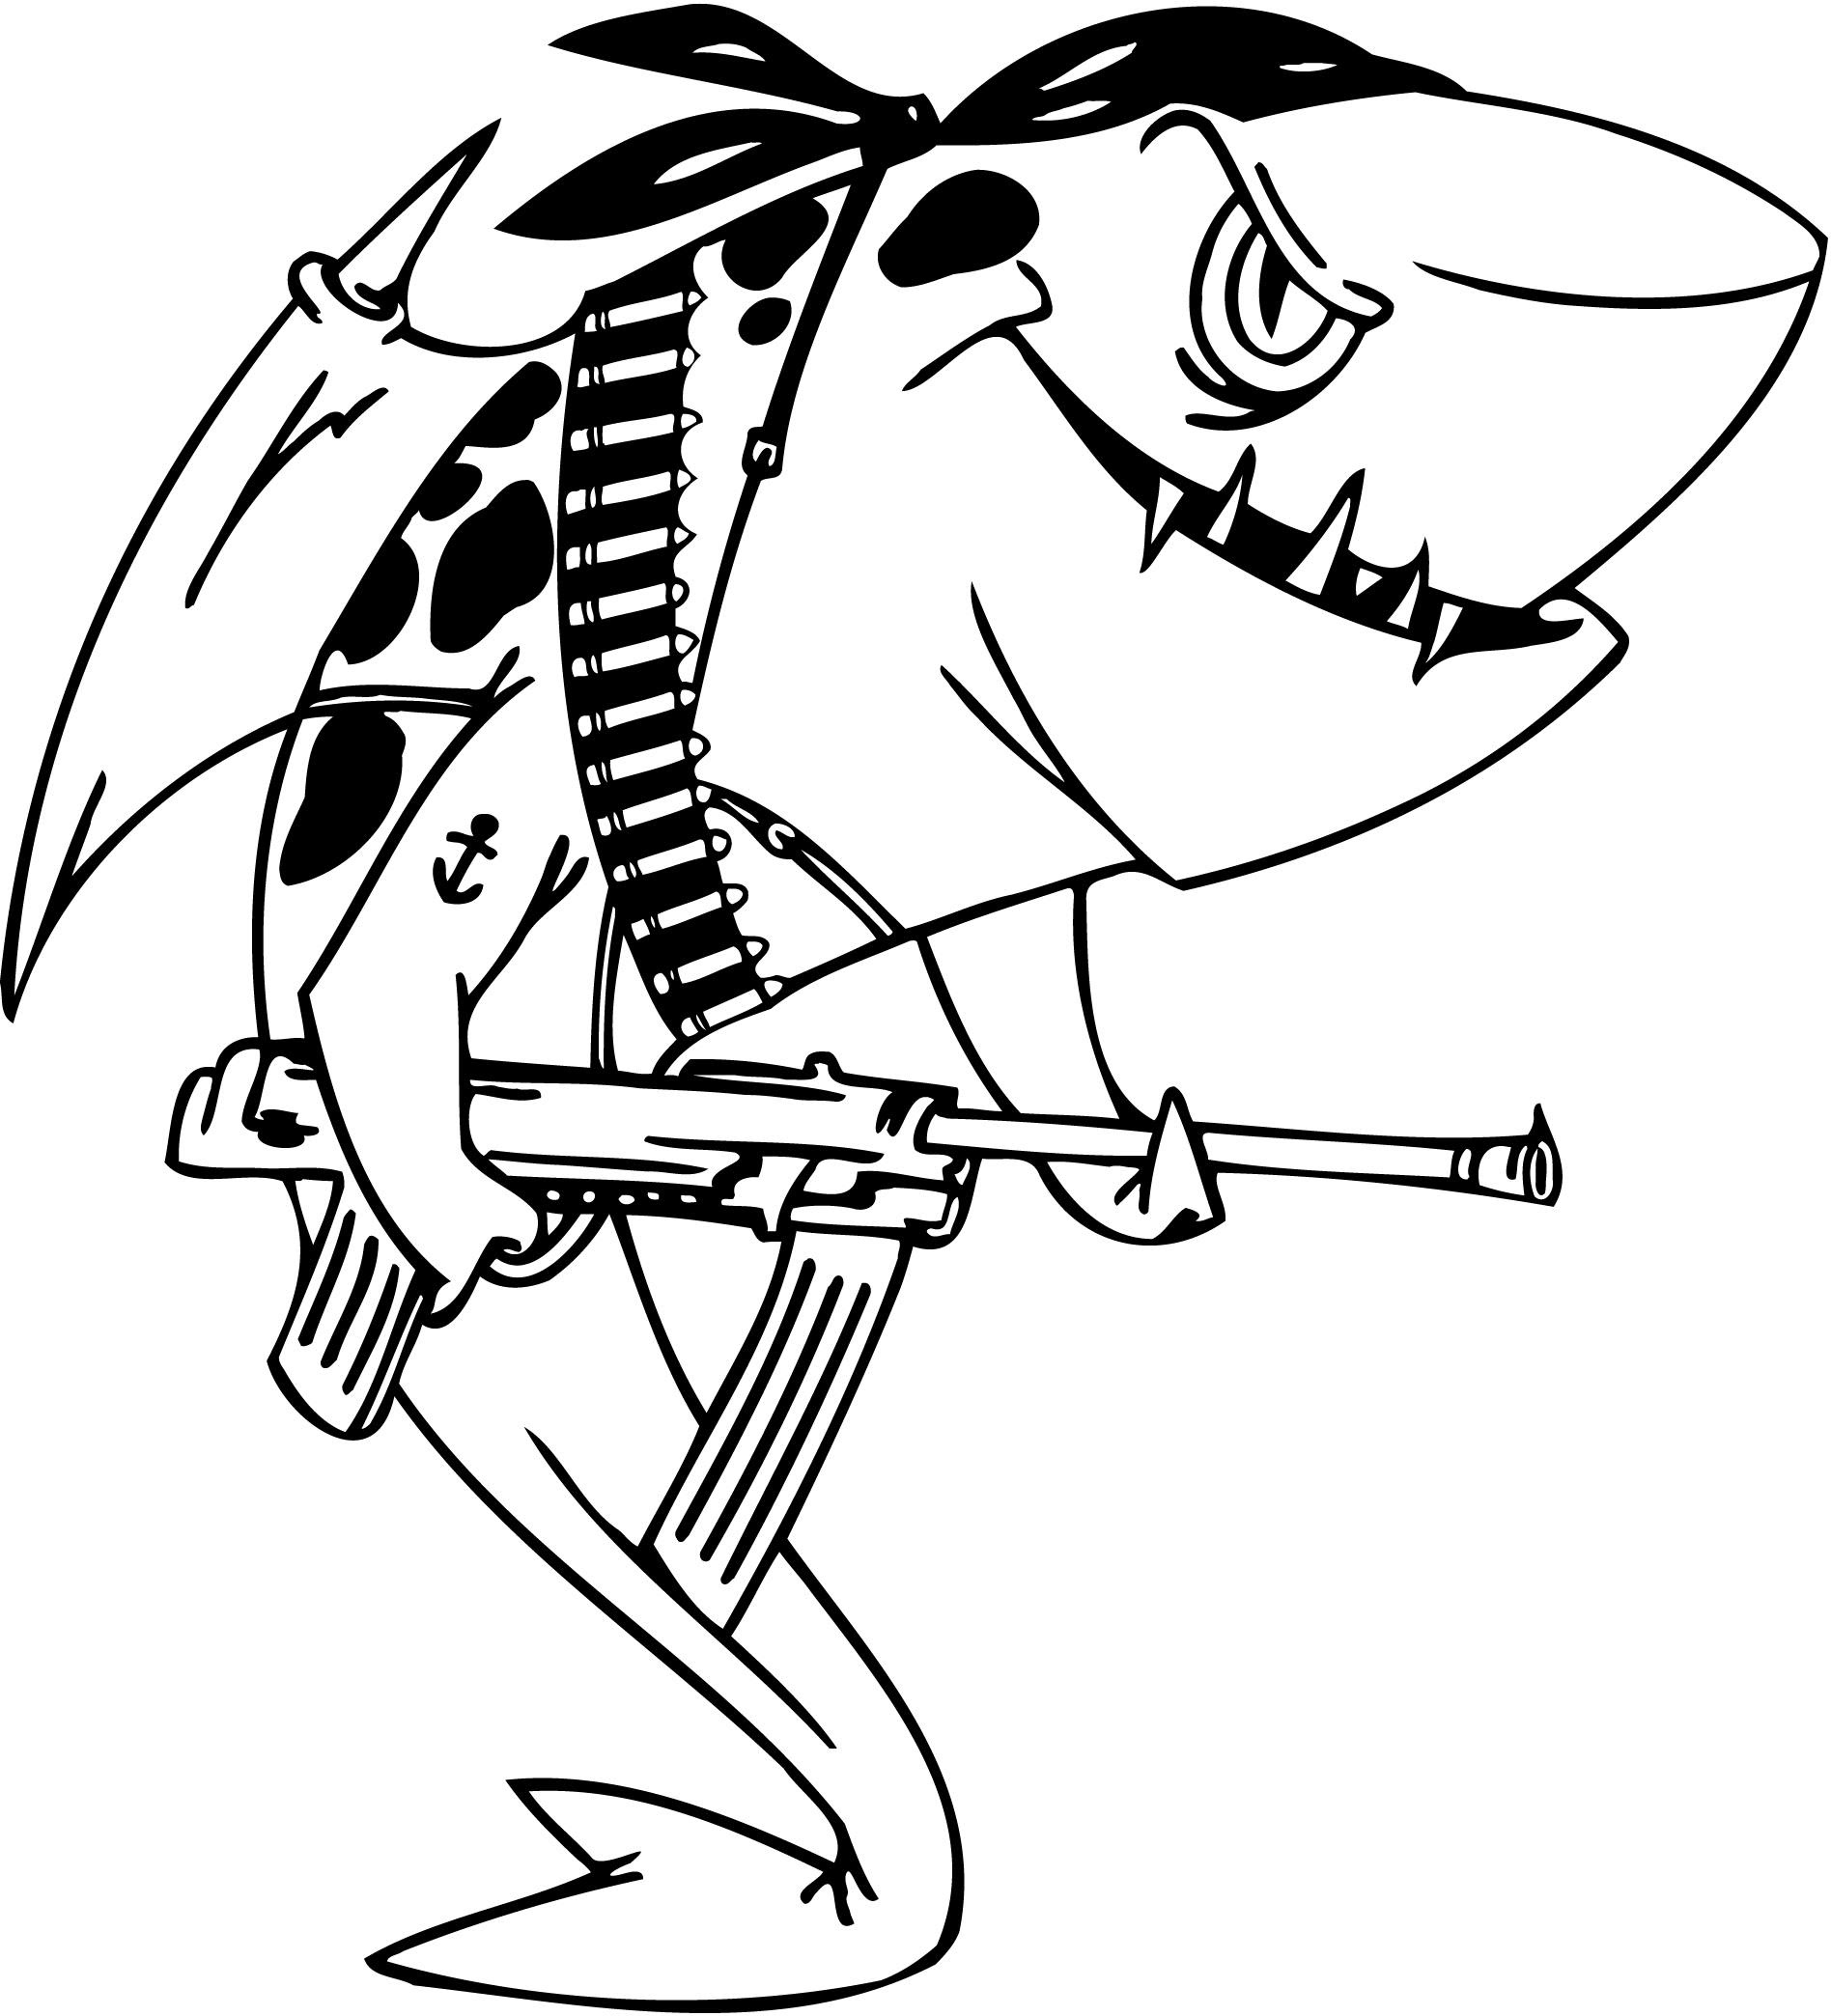 Baby Shark Coloring Pages at GetColorings.com   Free ...